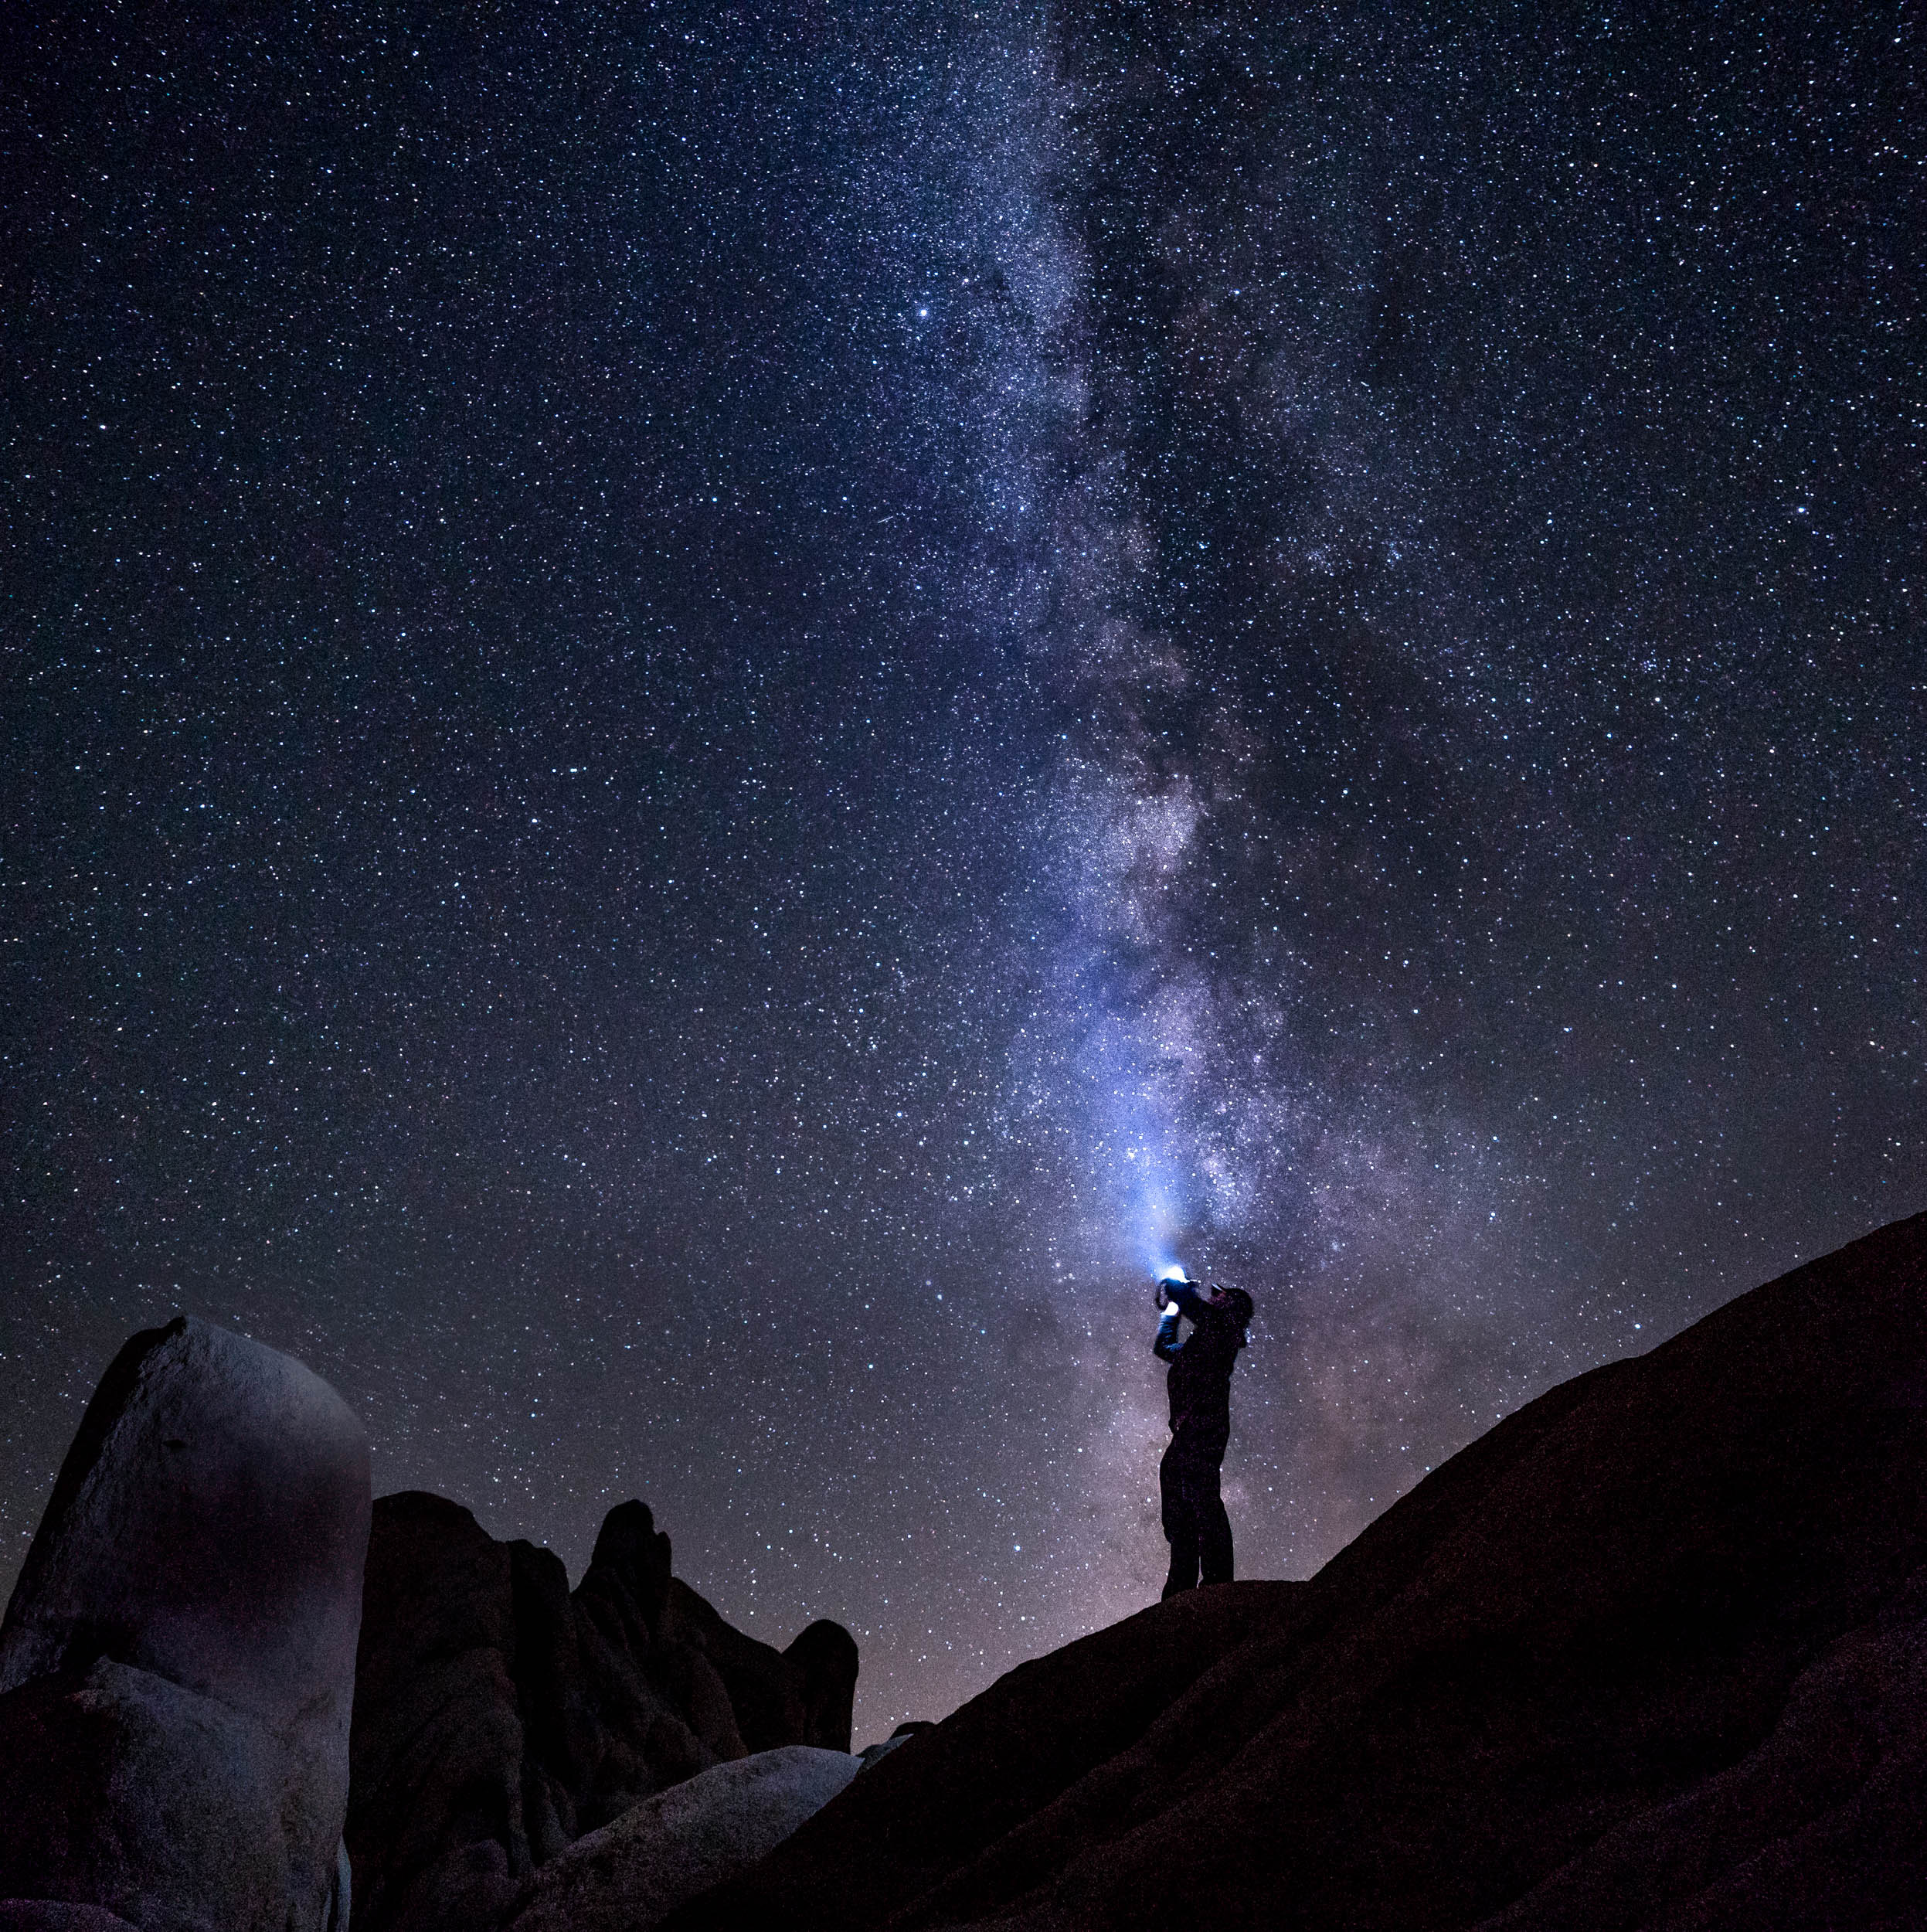 Shooting the milky way in the Joshua Tree National Park.